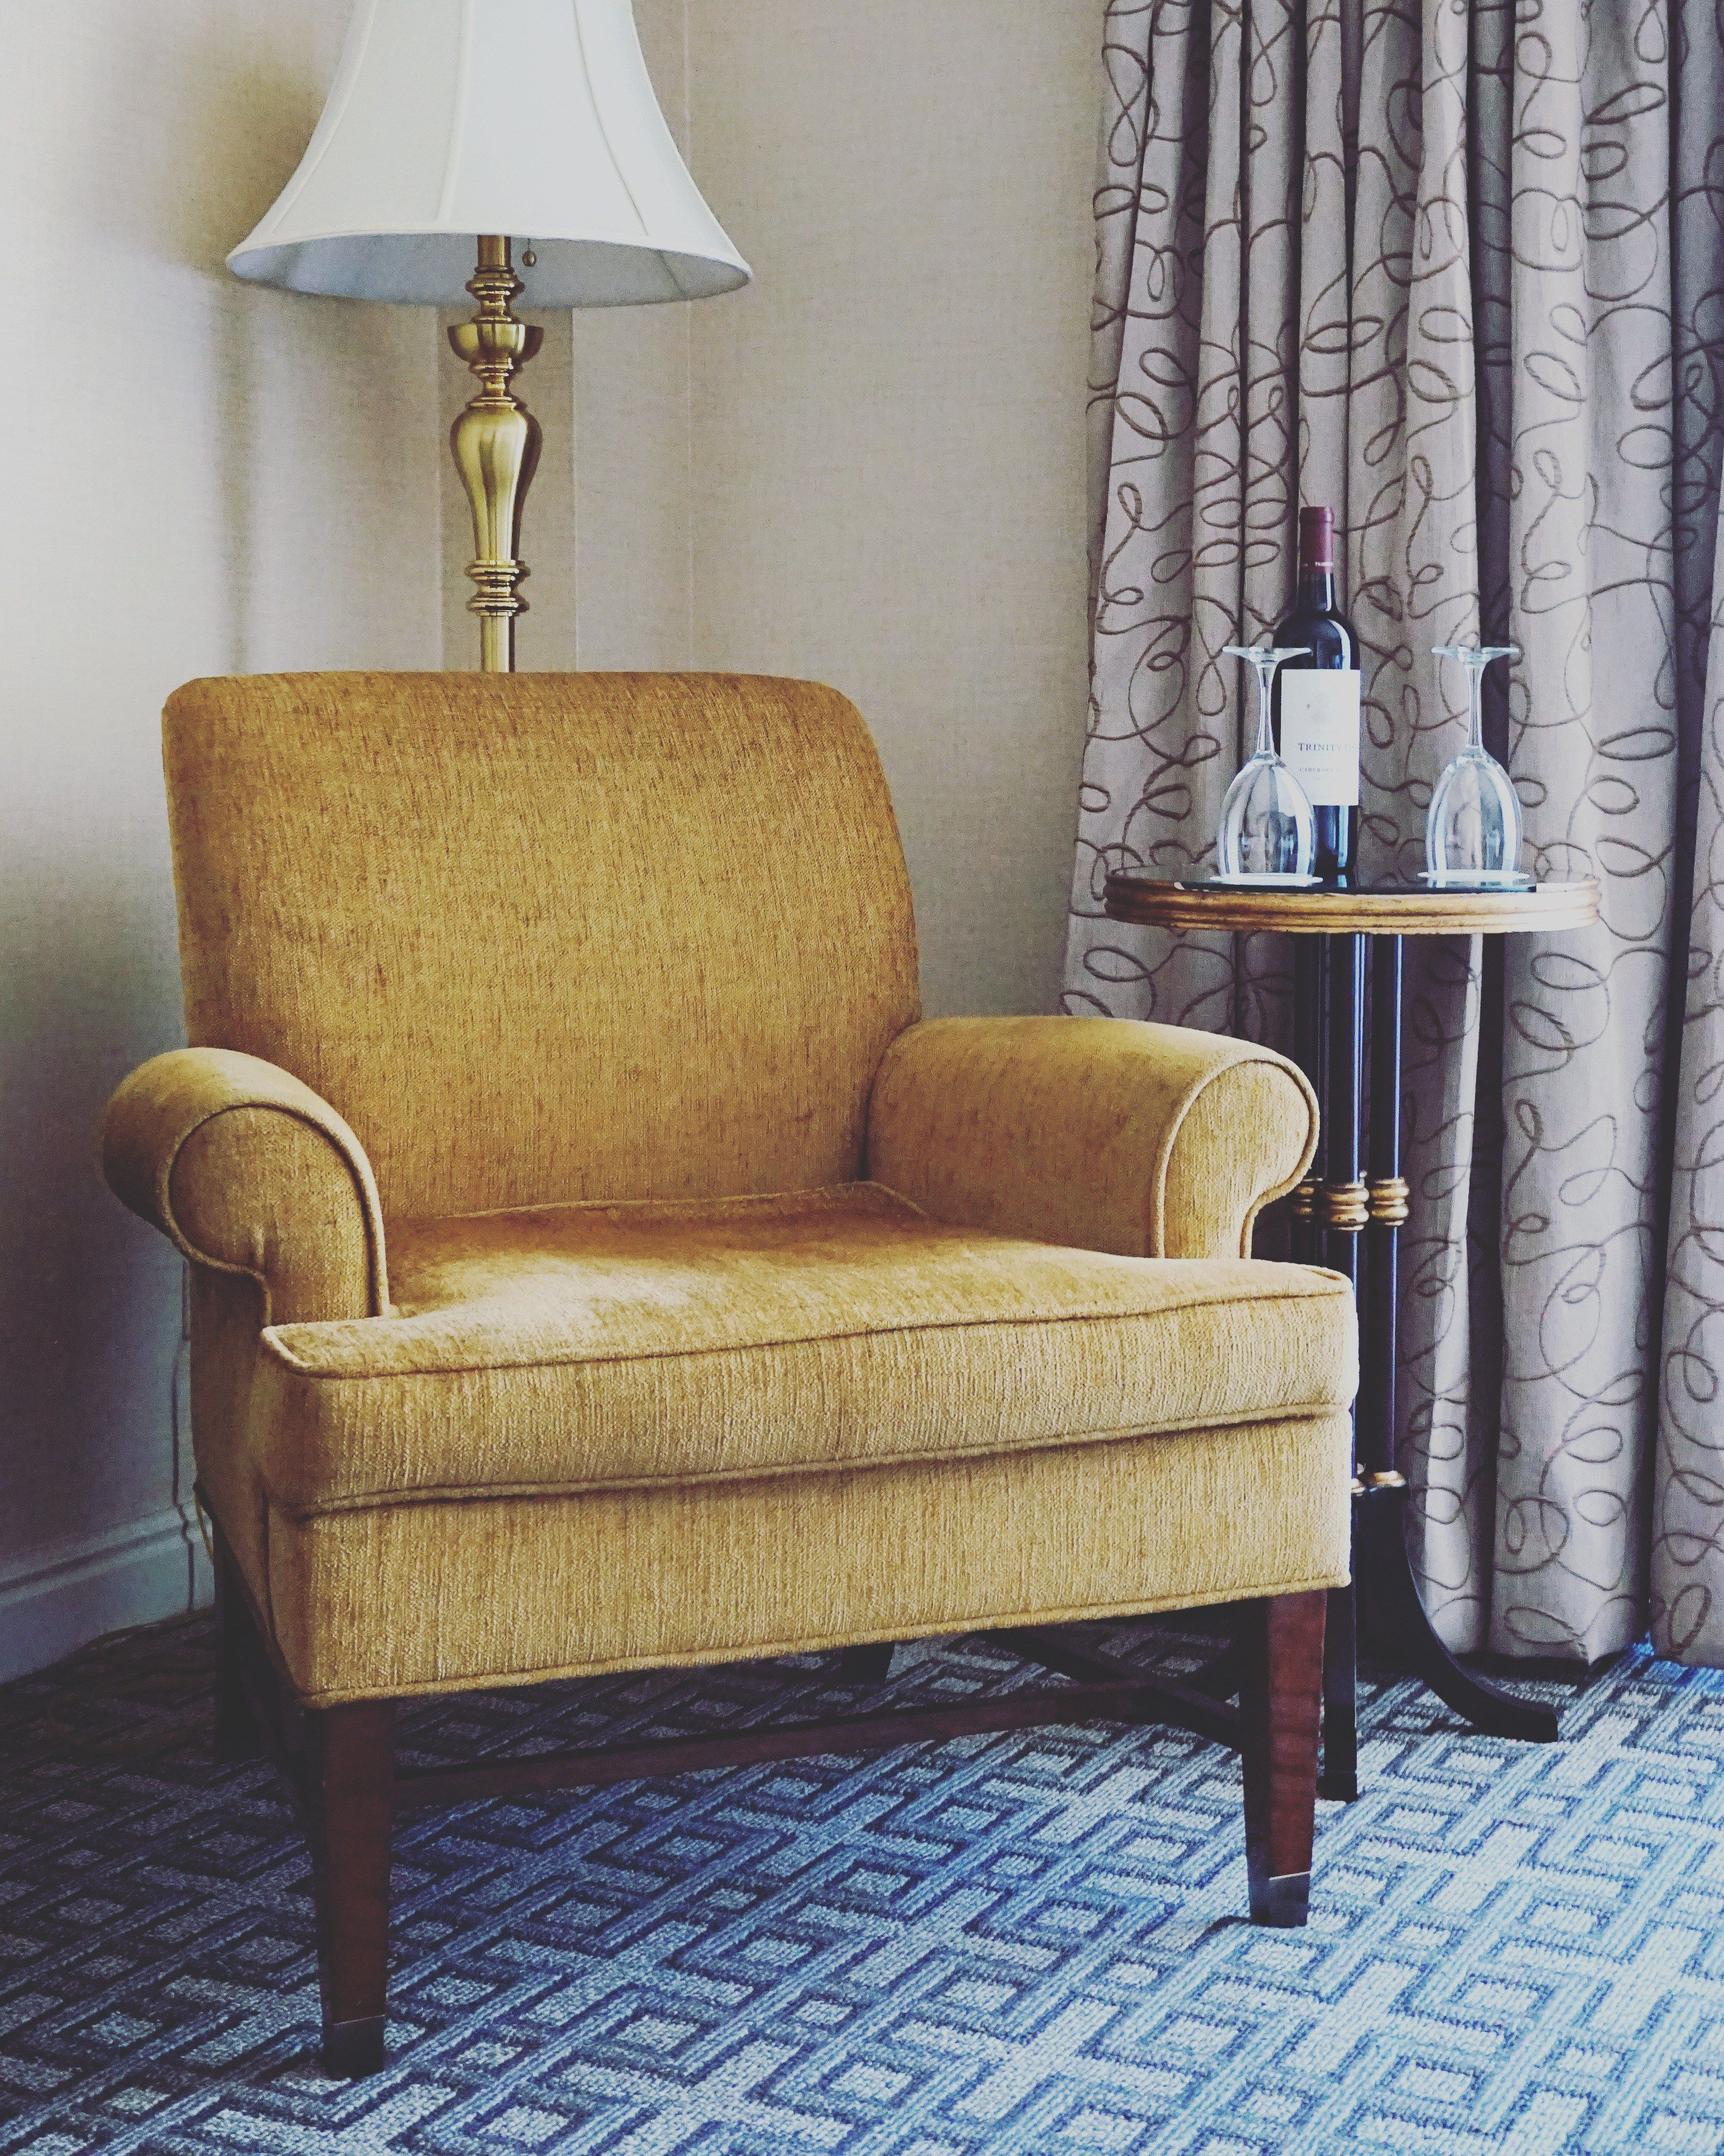 Take a seat, and enjoy a glass of whine at Warwick Denver Hotel featured in A On the Road's blog